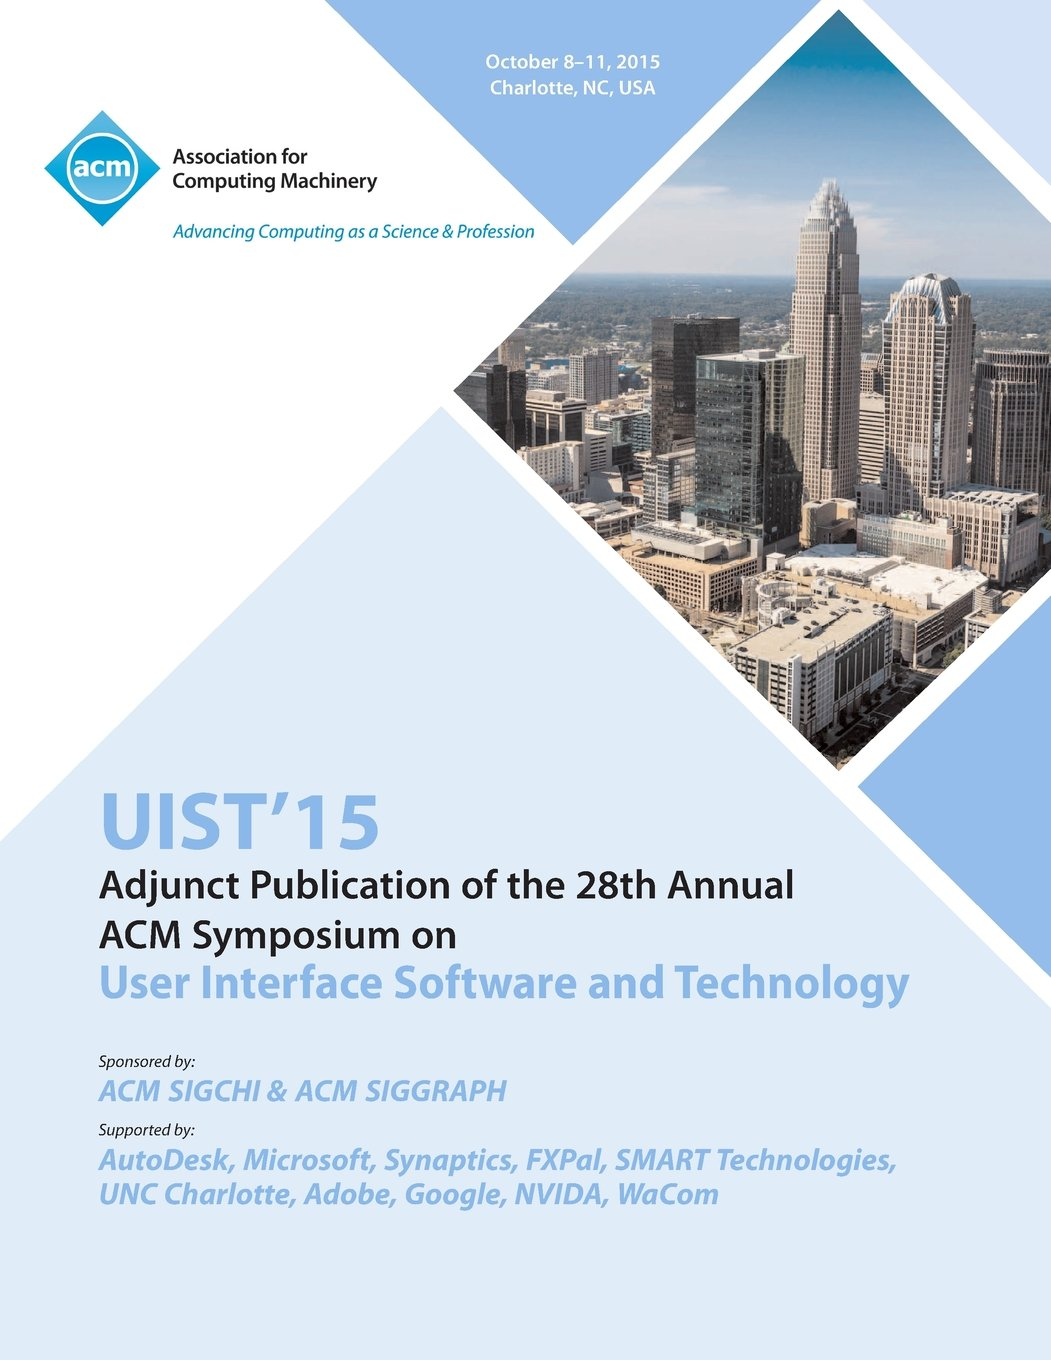 UIST 15 Adjunct to 28th ACM User Interface Software and Technology Symposium PDF